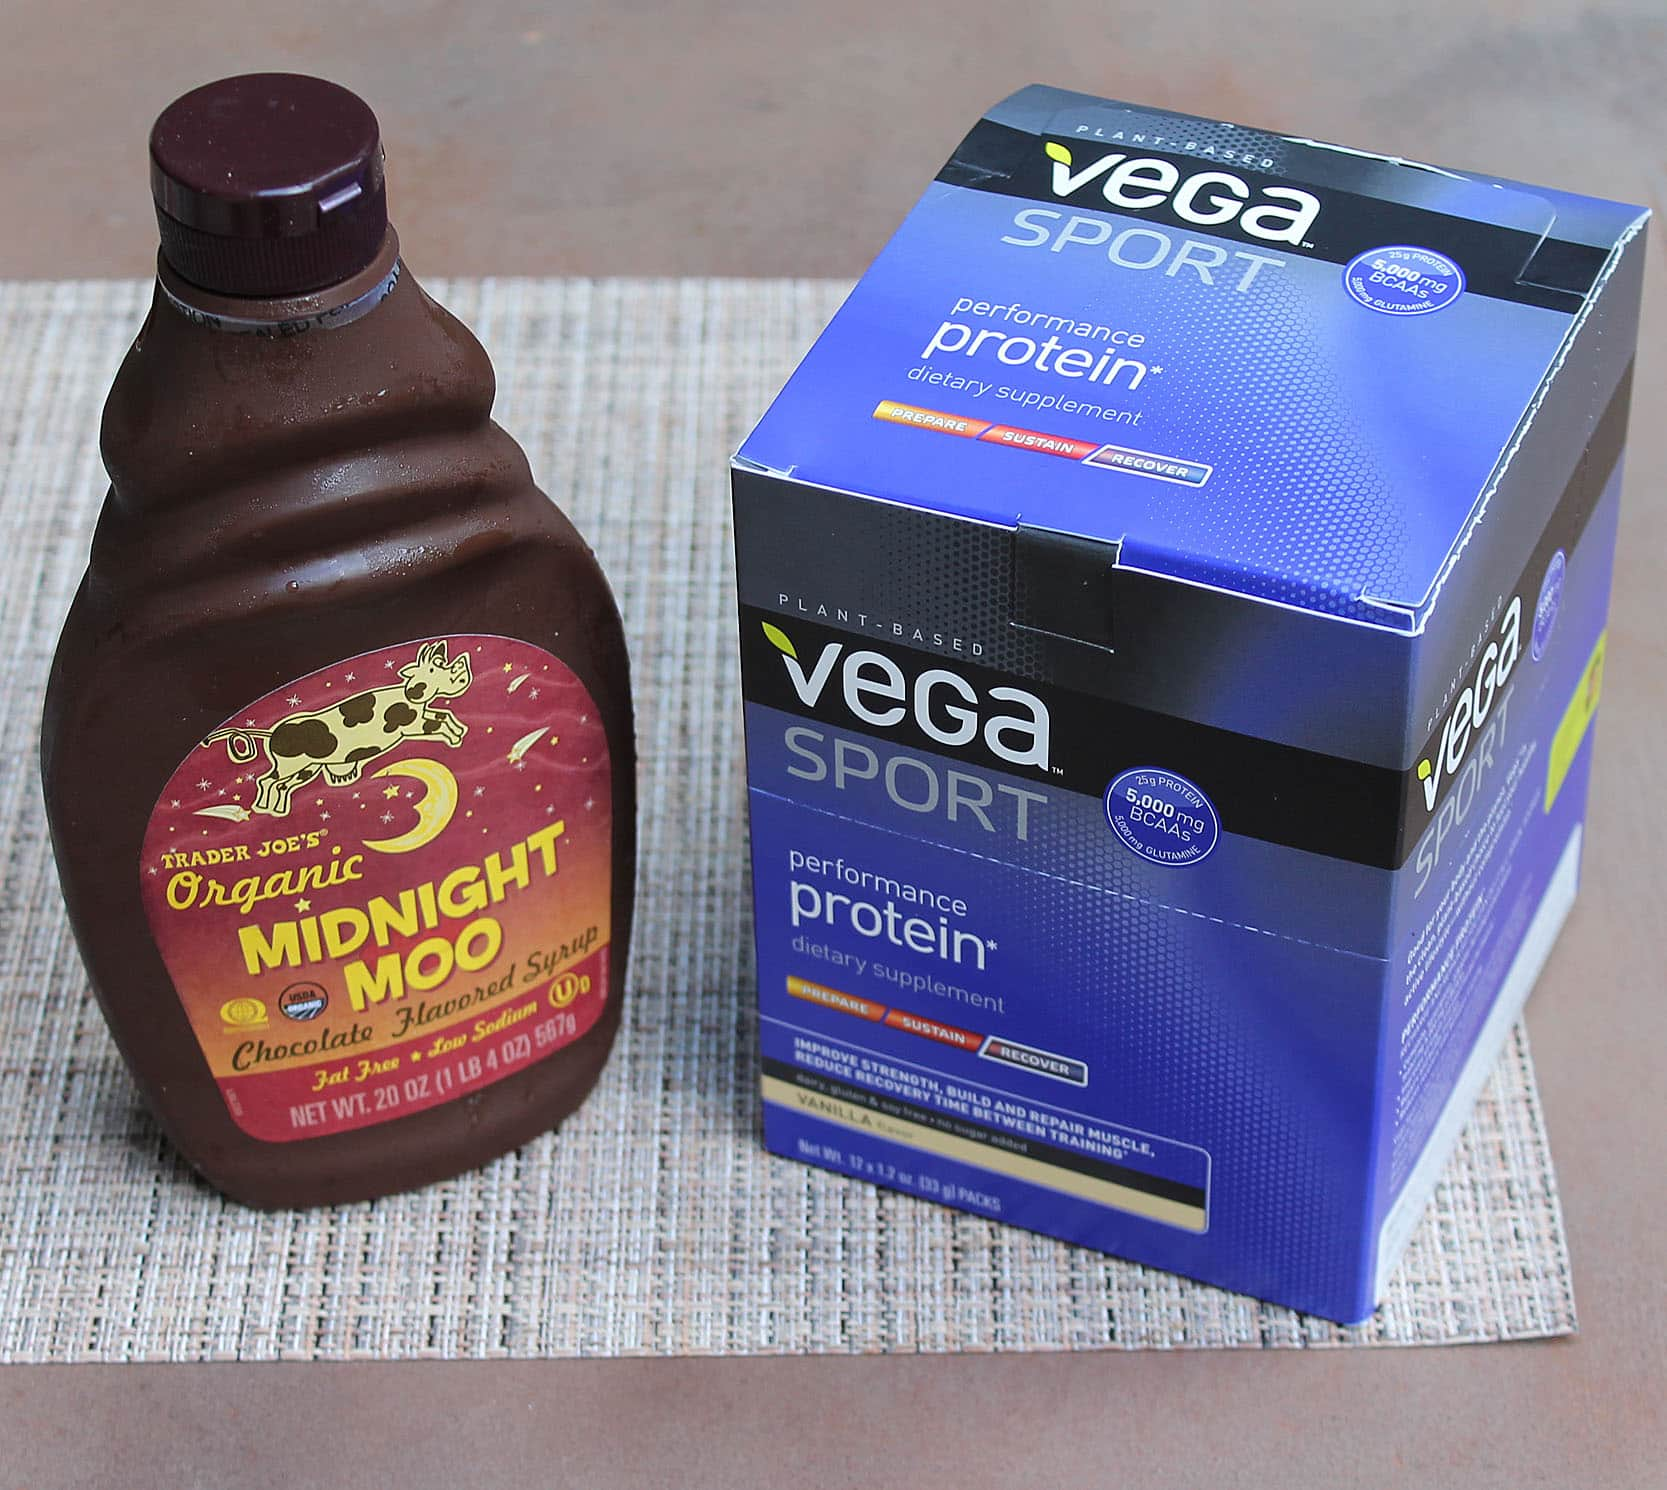 Vega Performance protein and chocolate syrup